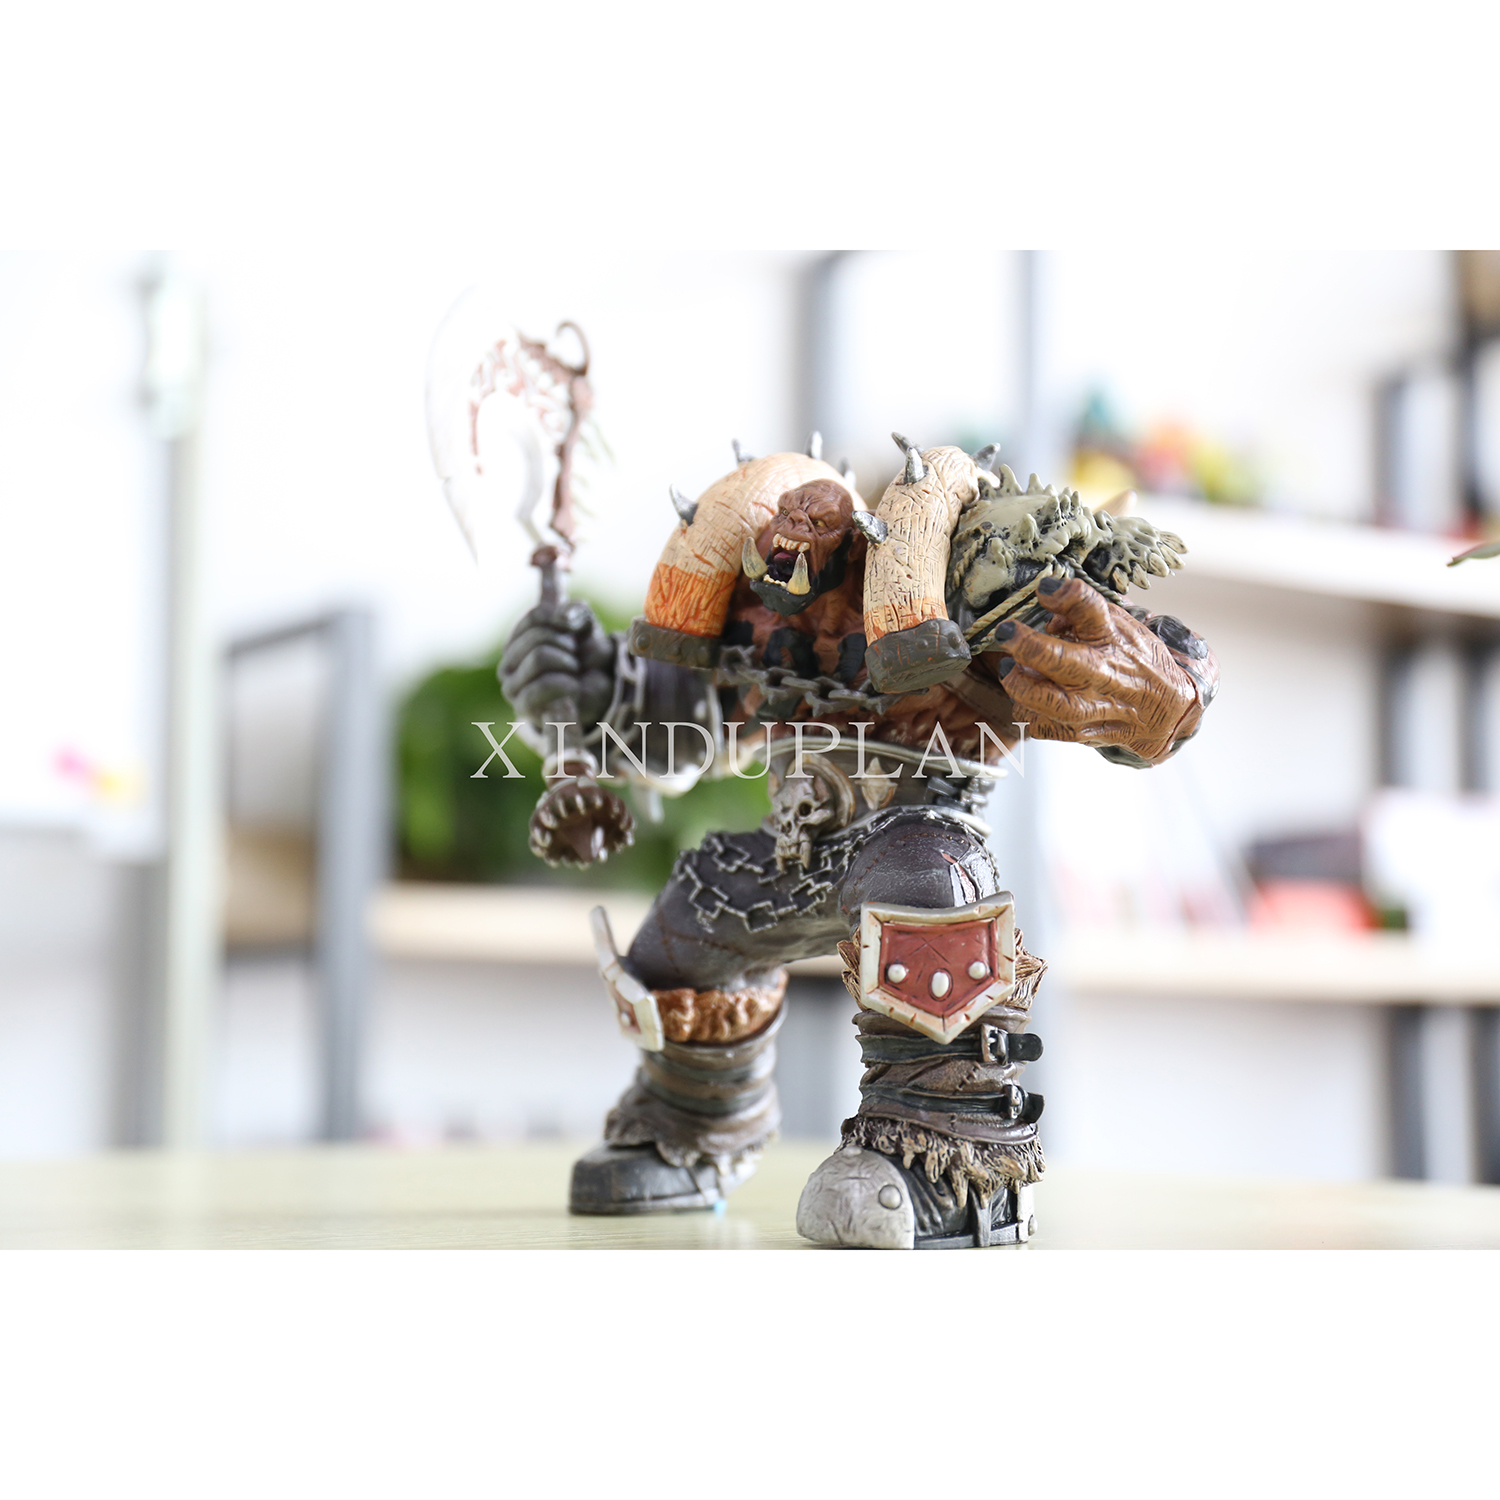 XINDUPLAN NEW Dota 2 Garrosh Hellscream Premium 8 eries Platinum big box Action Figure Toys Game 19cm PVC Collection Model 0688 eset nod32 антивирус platinum edition 3 пк 2 года